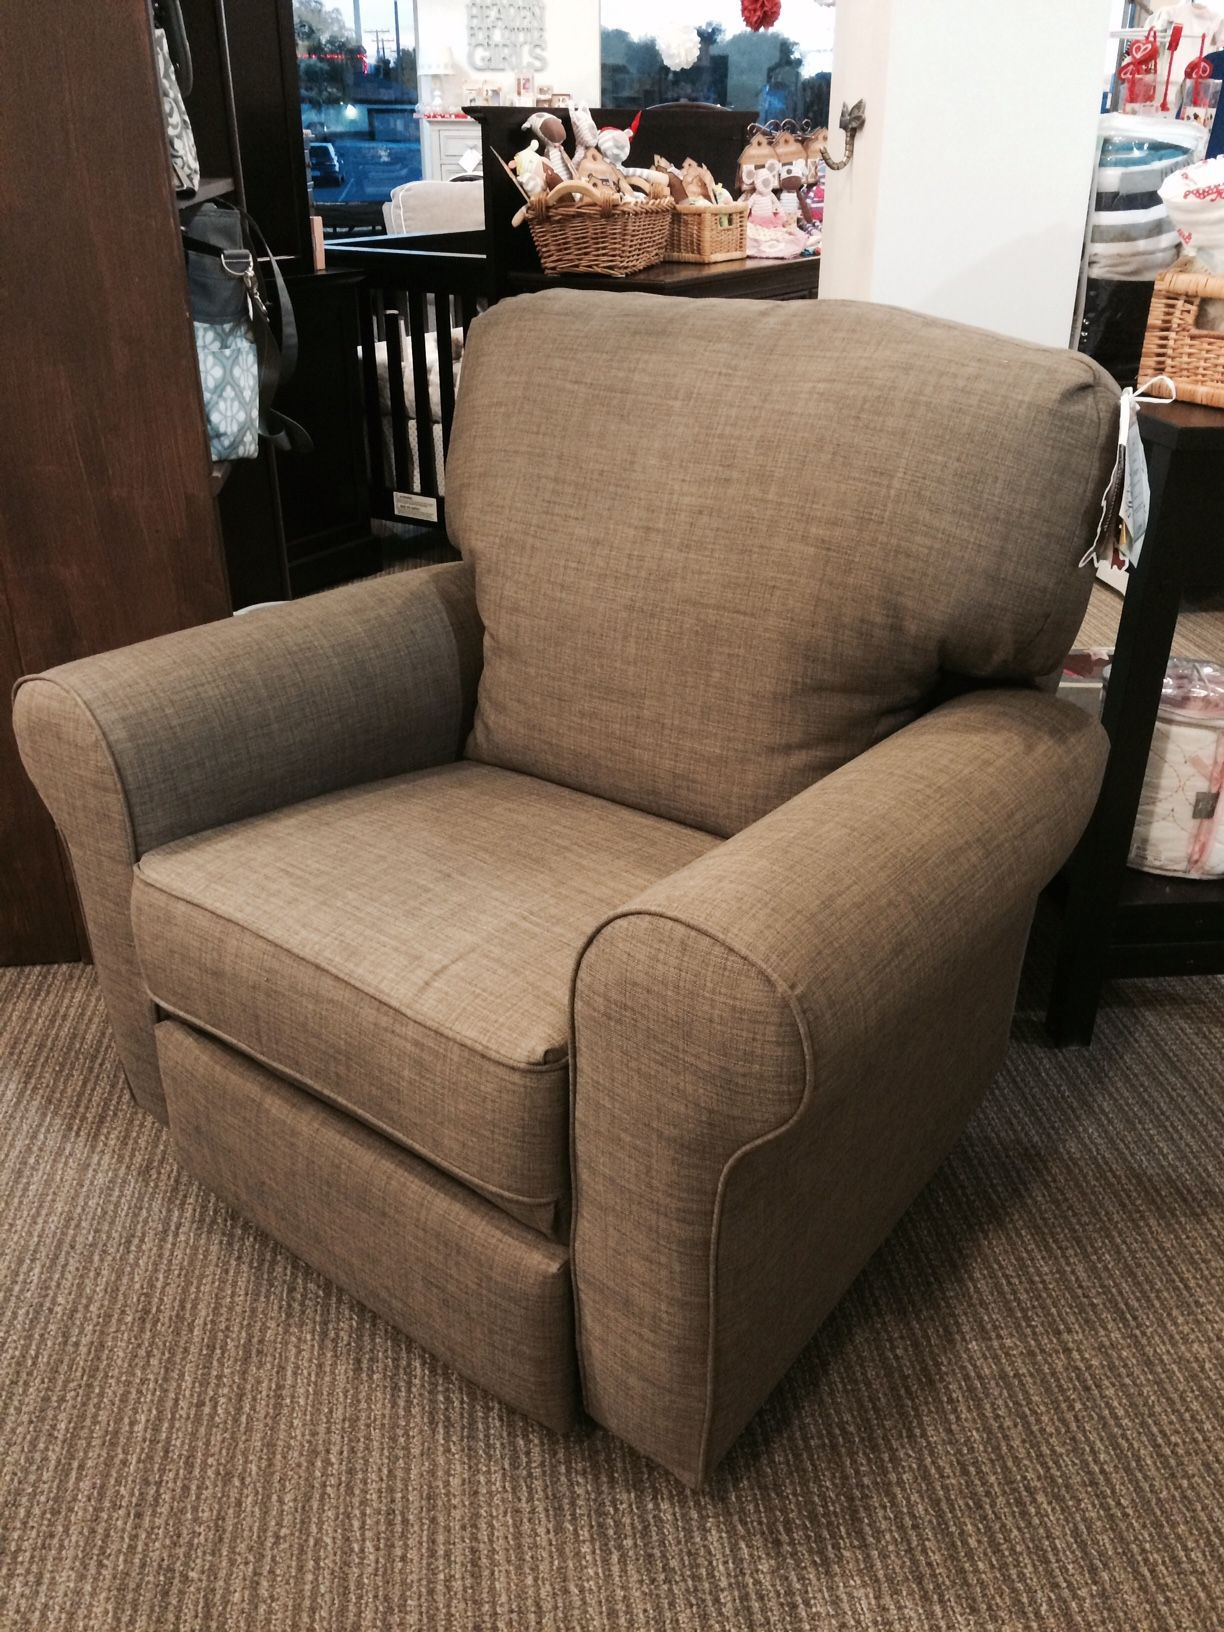 Superb Best Chairs   Irvington Space Saver In Stone Stock#247230